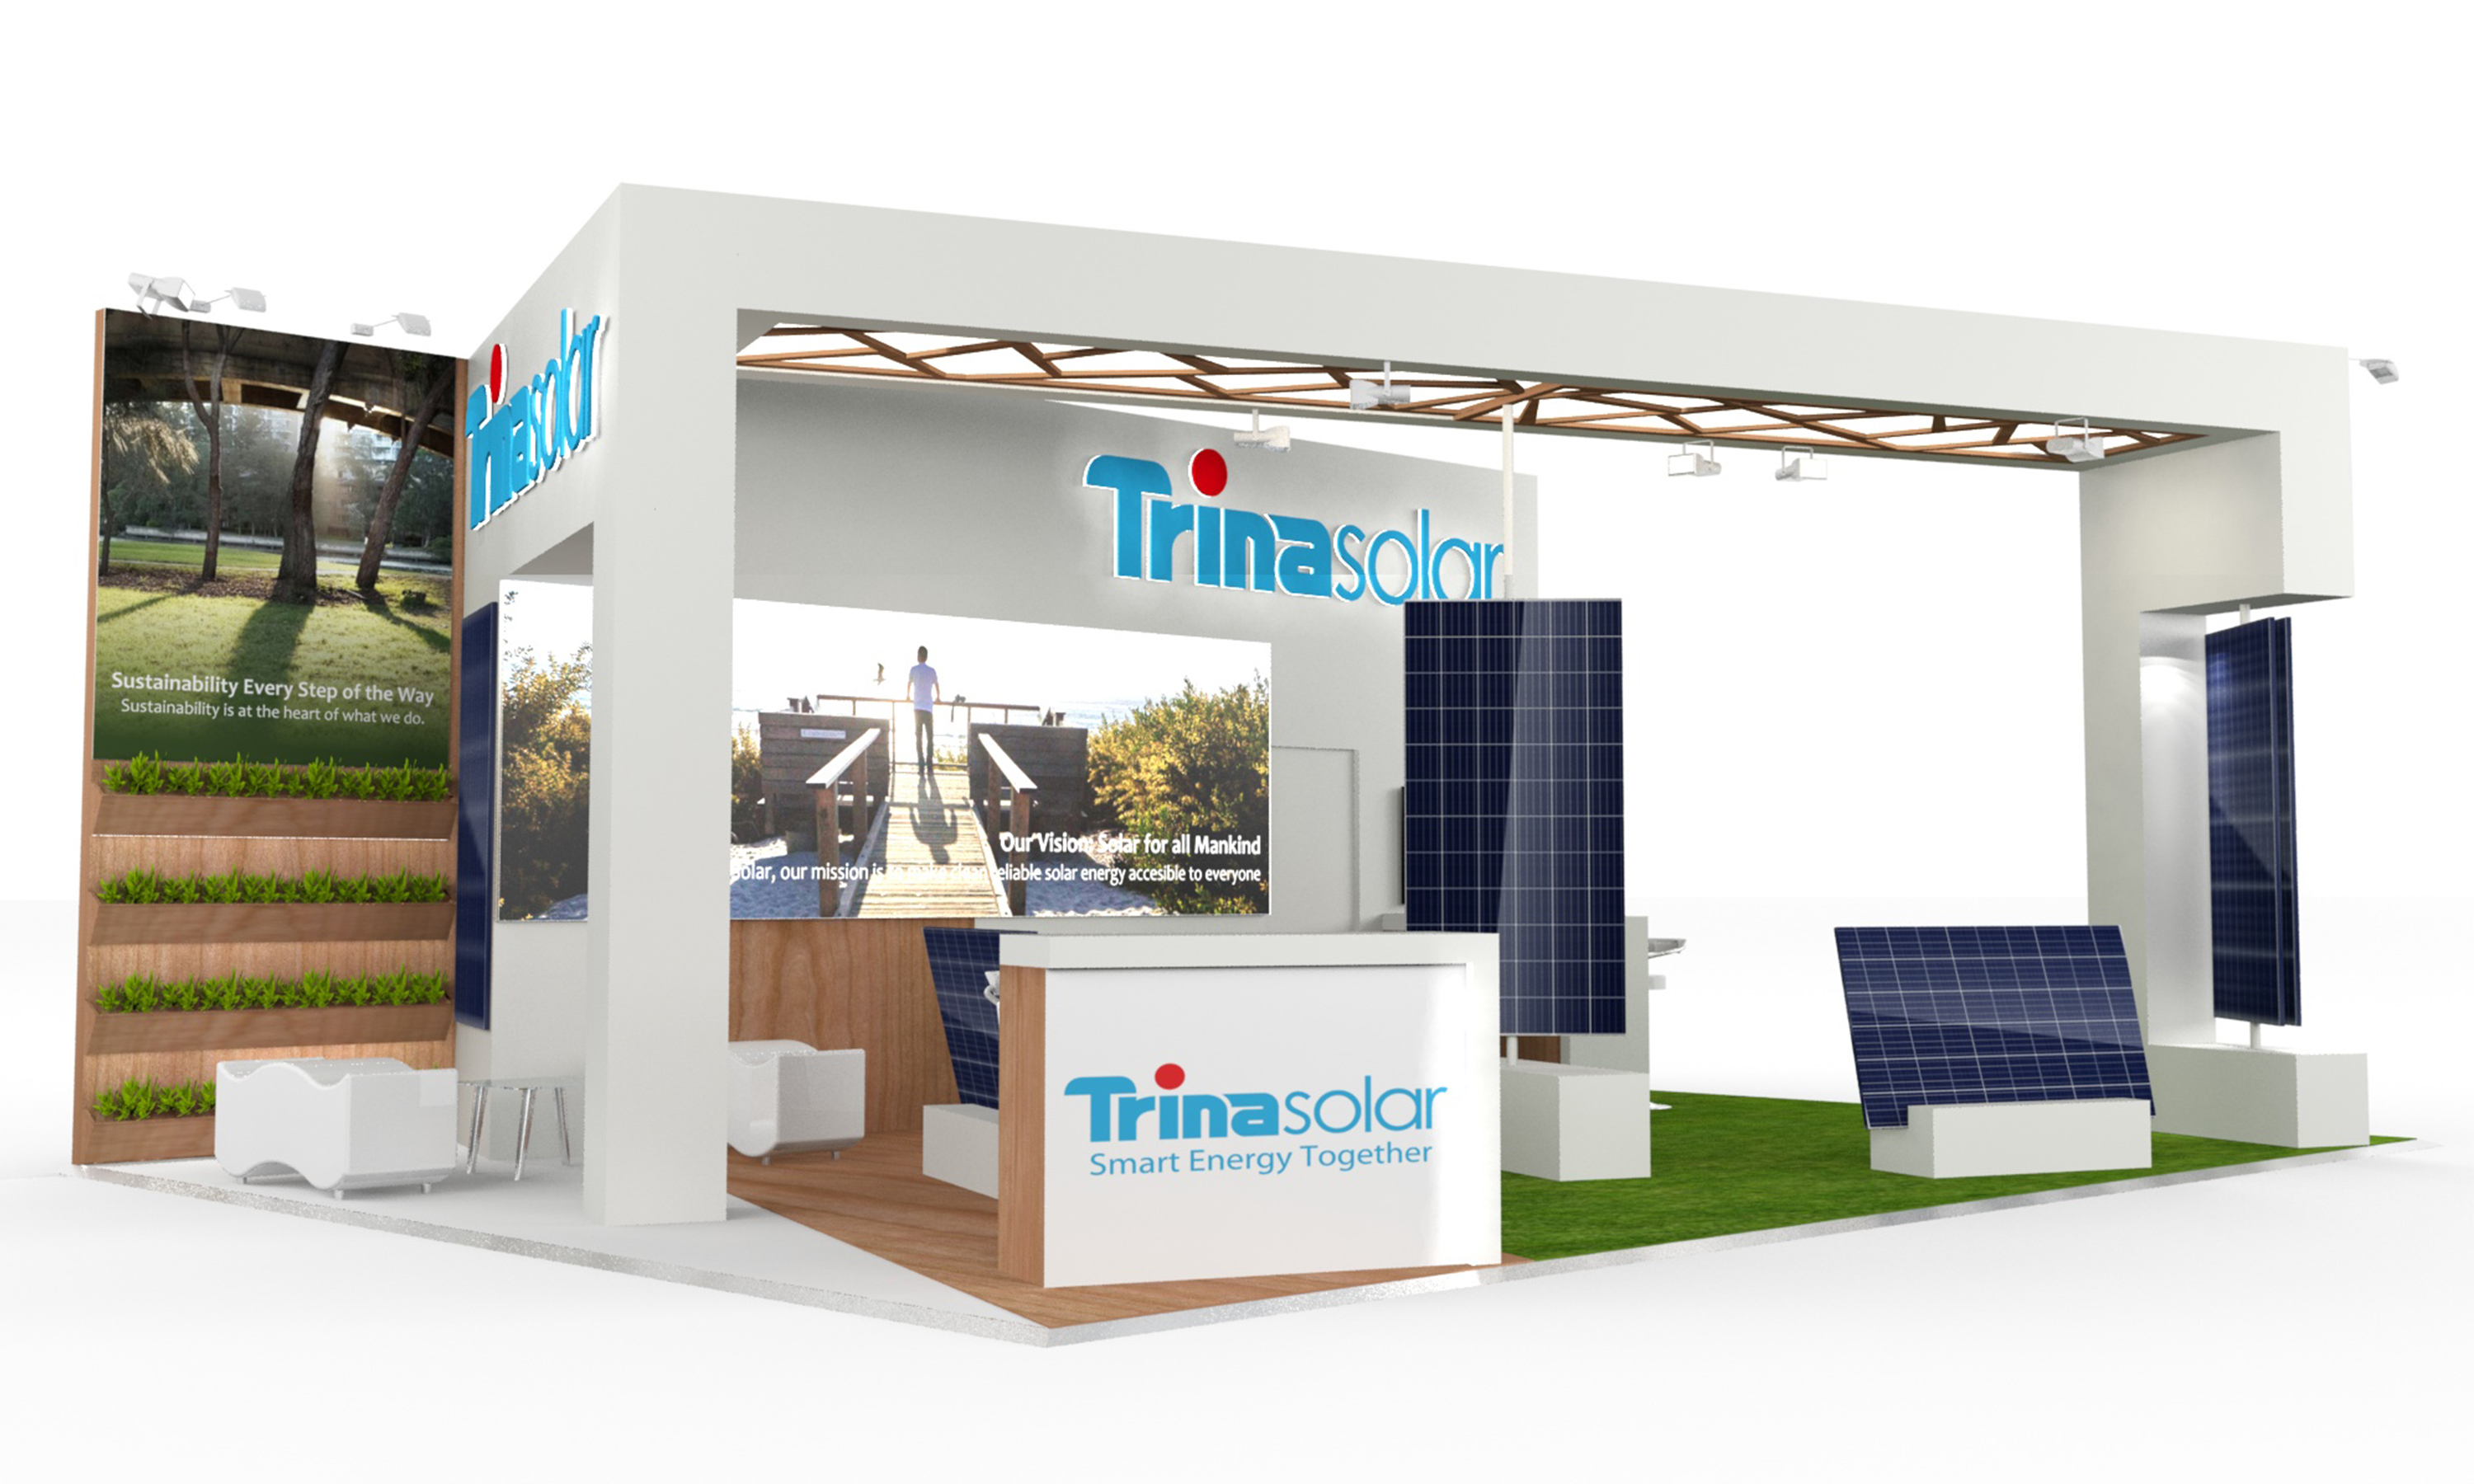 Exhibition Stand Design Hertford : Exhibition stand design trina solar sugarlab creative